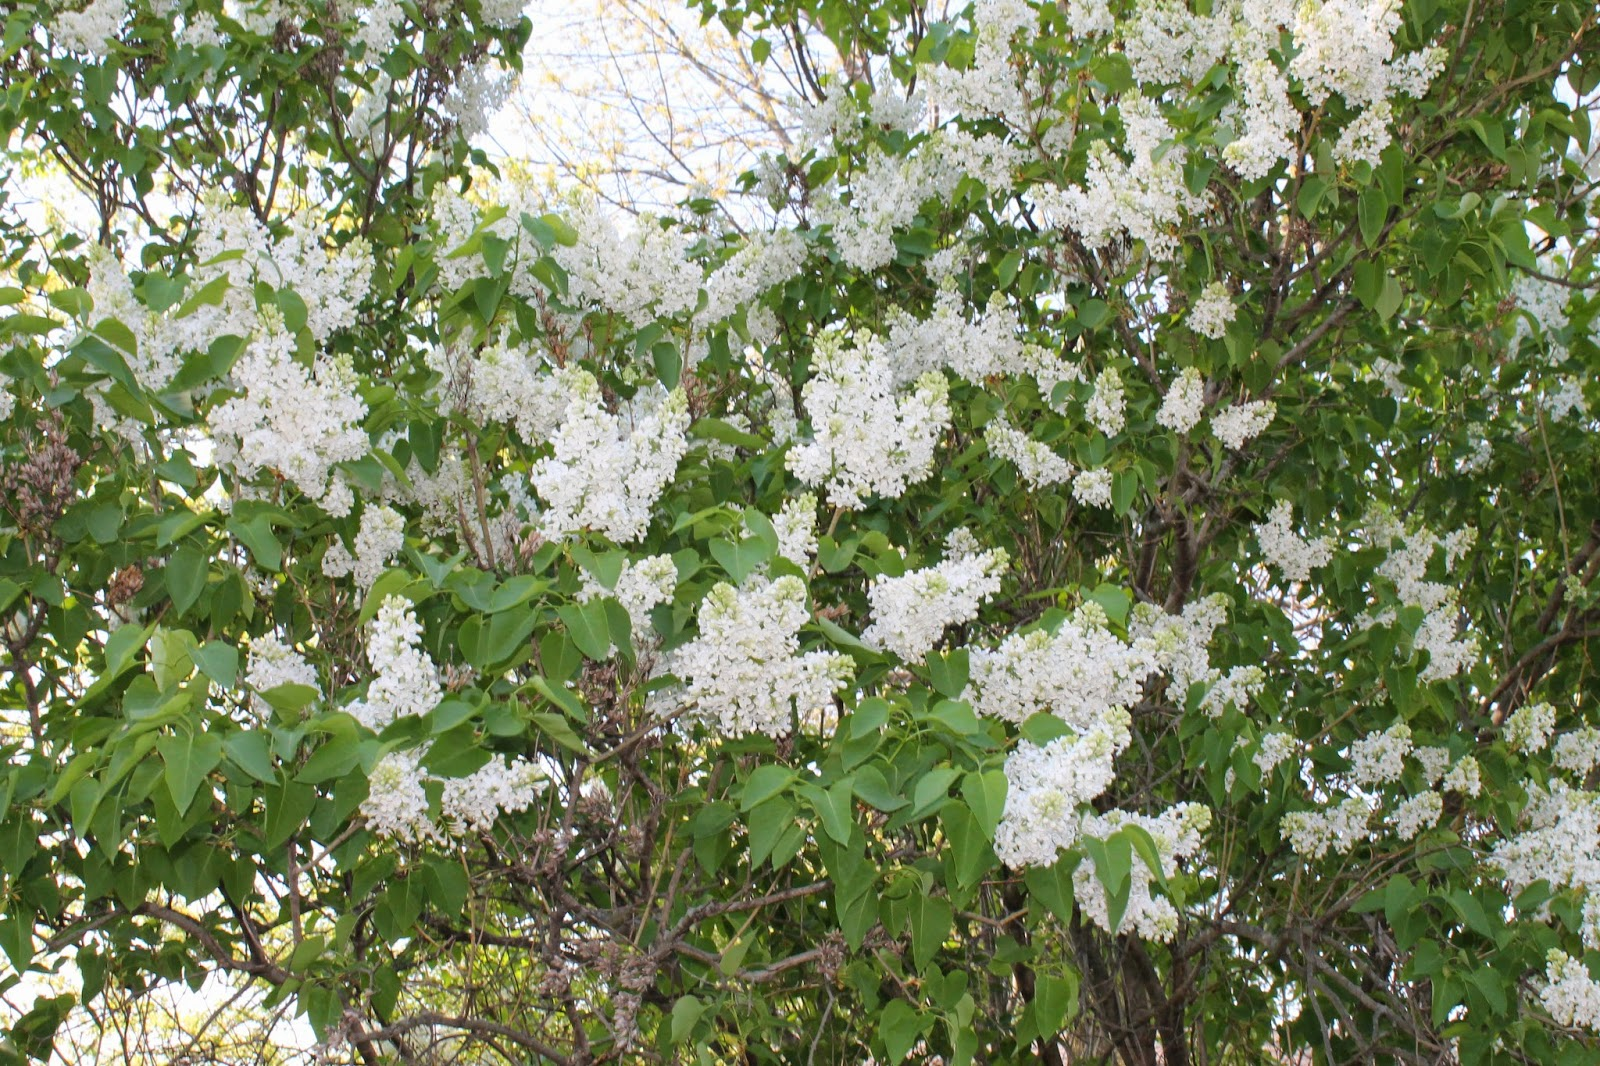 Tree with white flowers that smell good bindu bhatia astrology shejunks flowering trees it is curly early may blooming small white fragrant mightylinksfo